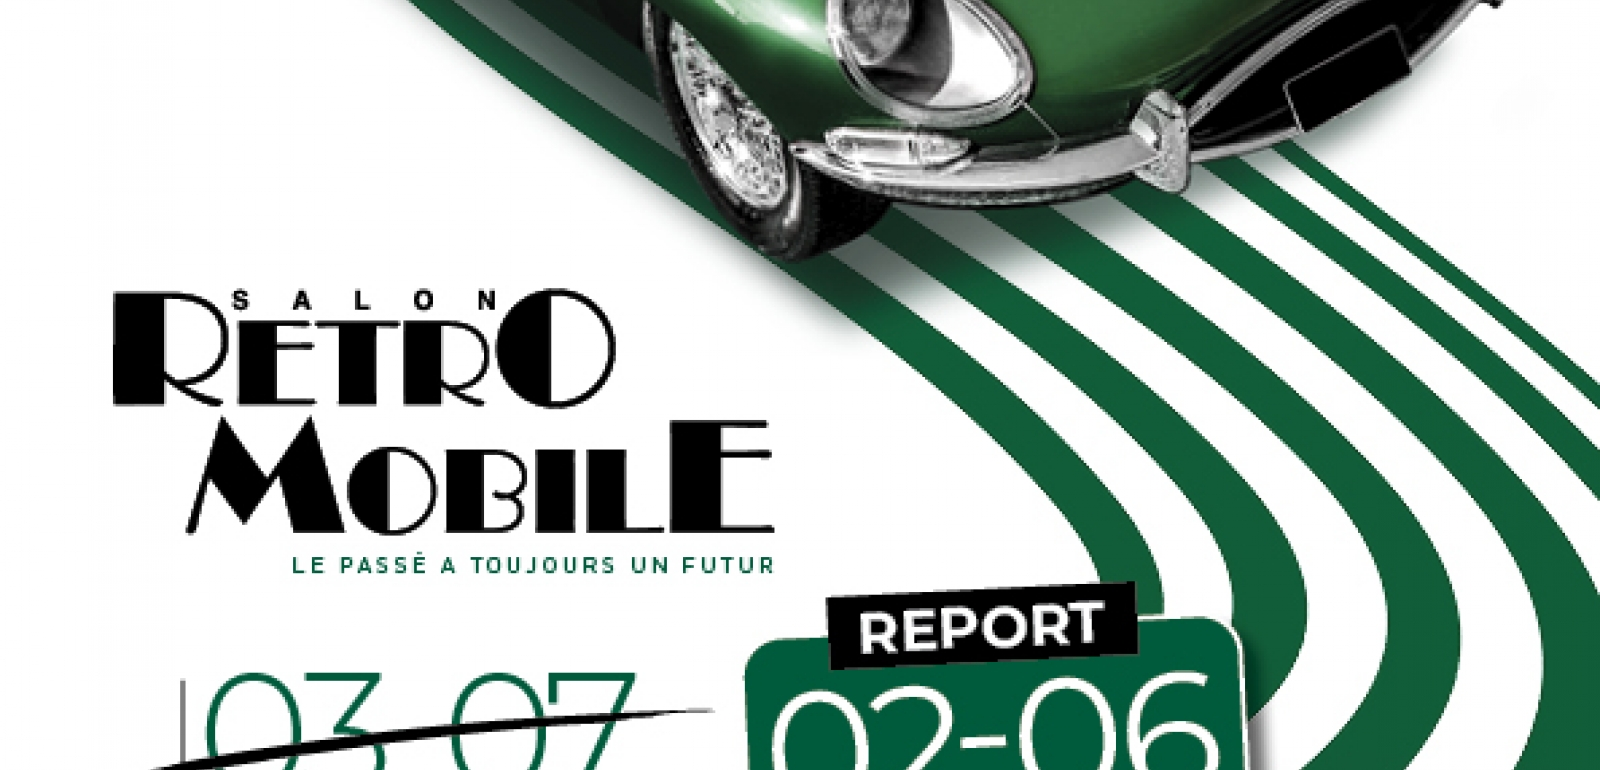 Retromobile report 2021